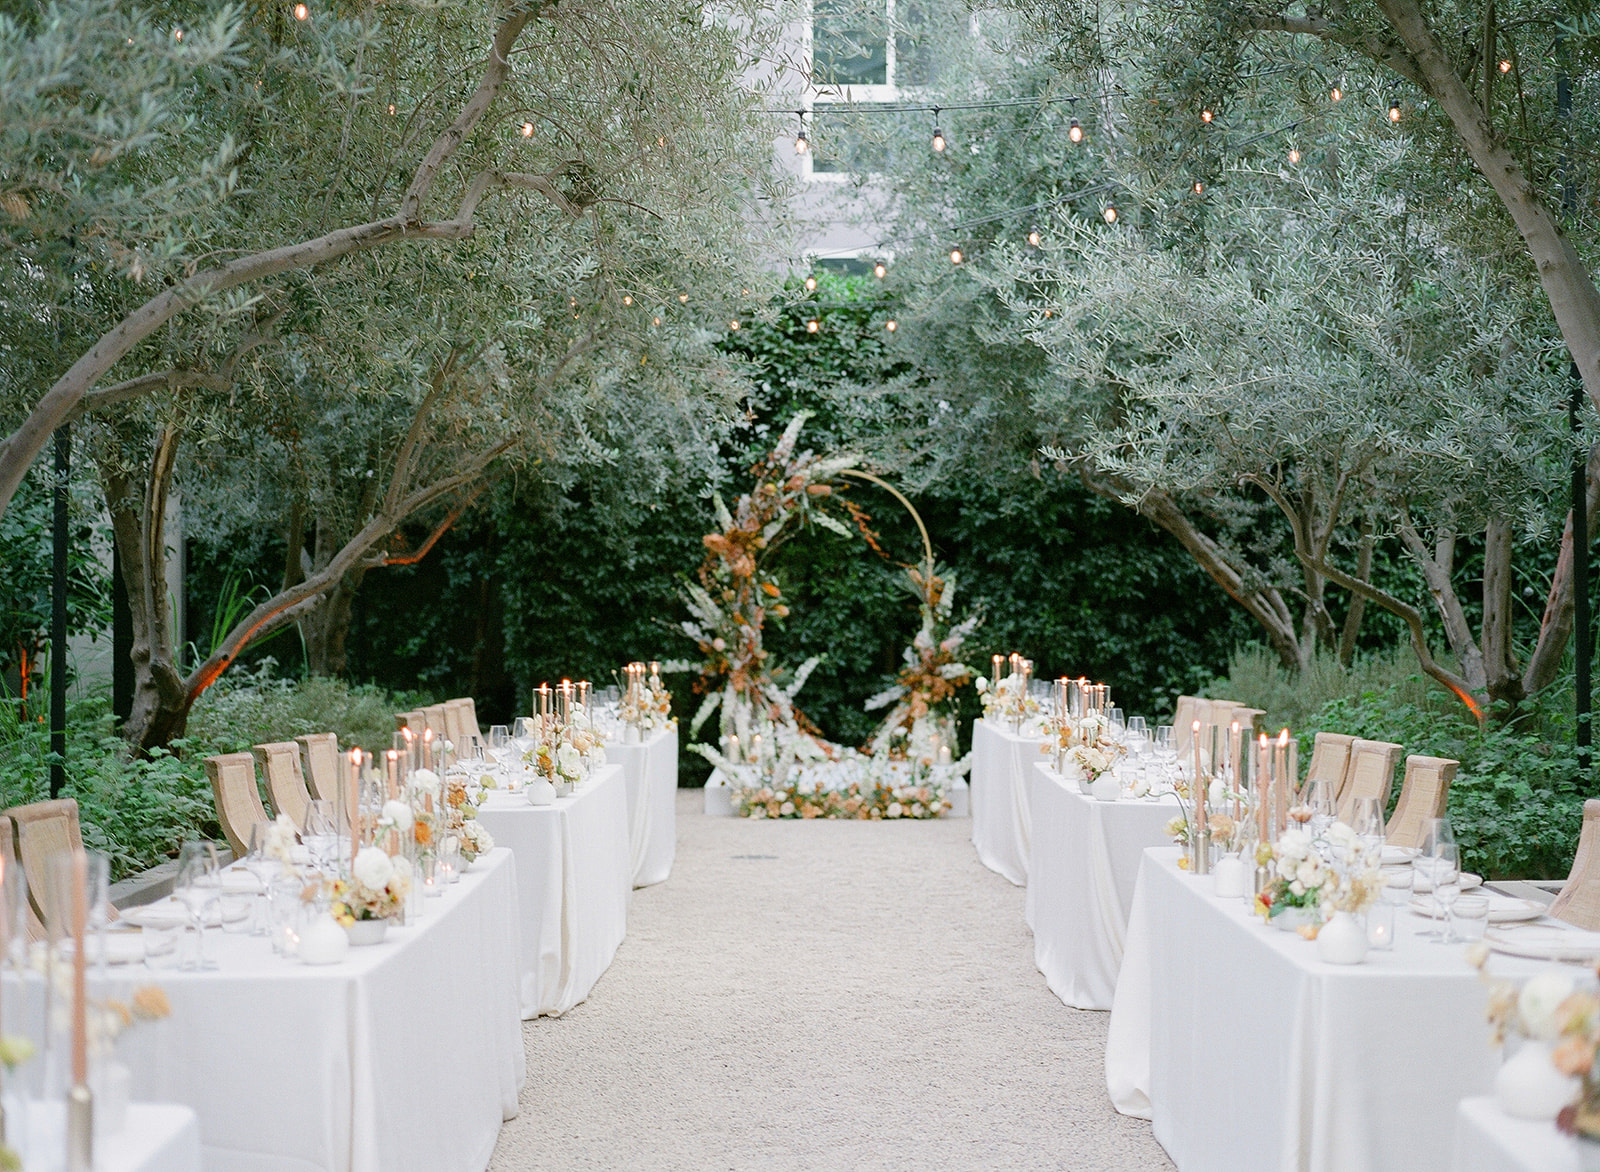 wedding ceremony outdoor garden space with tables for guests